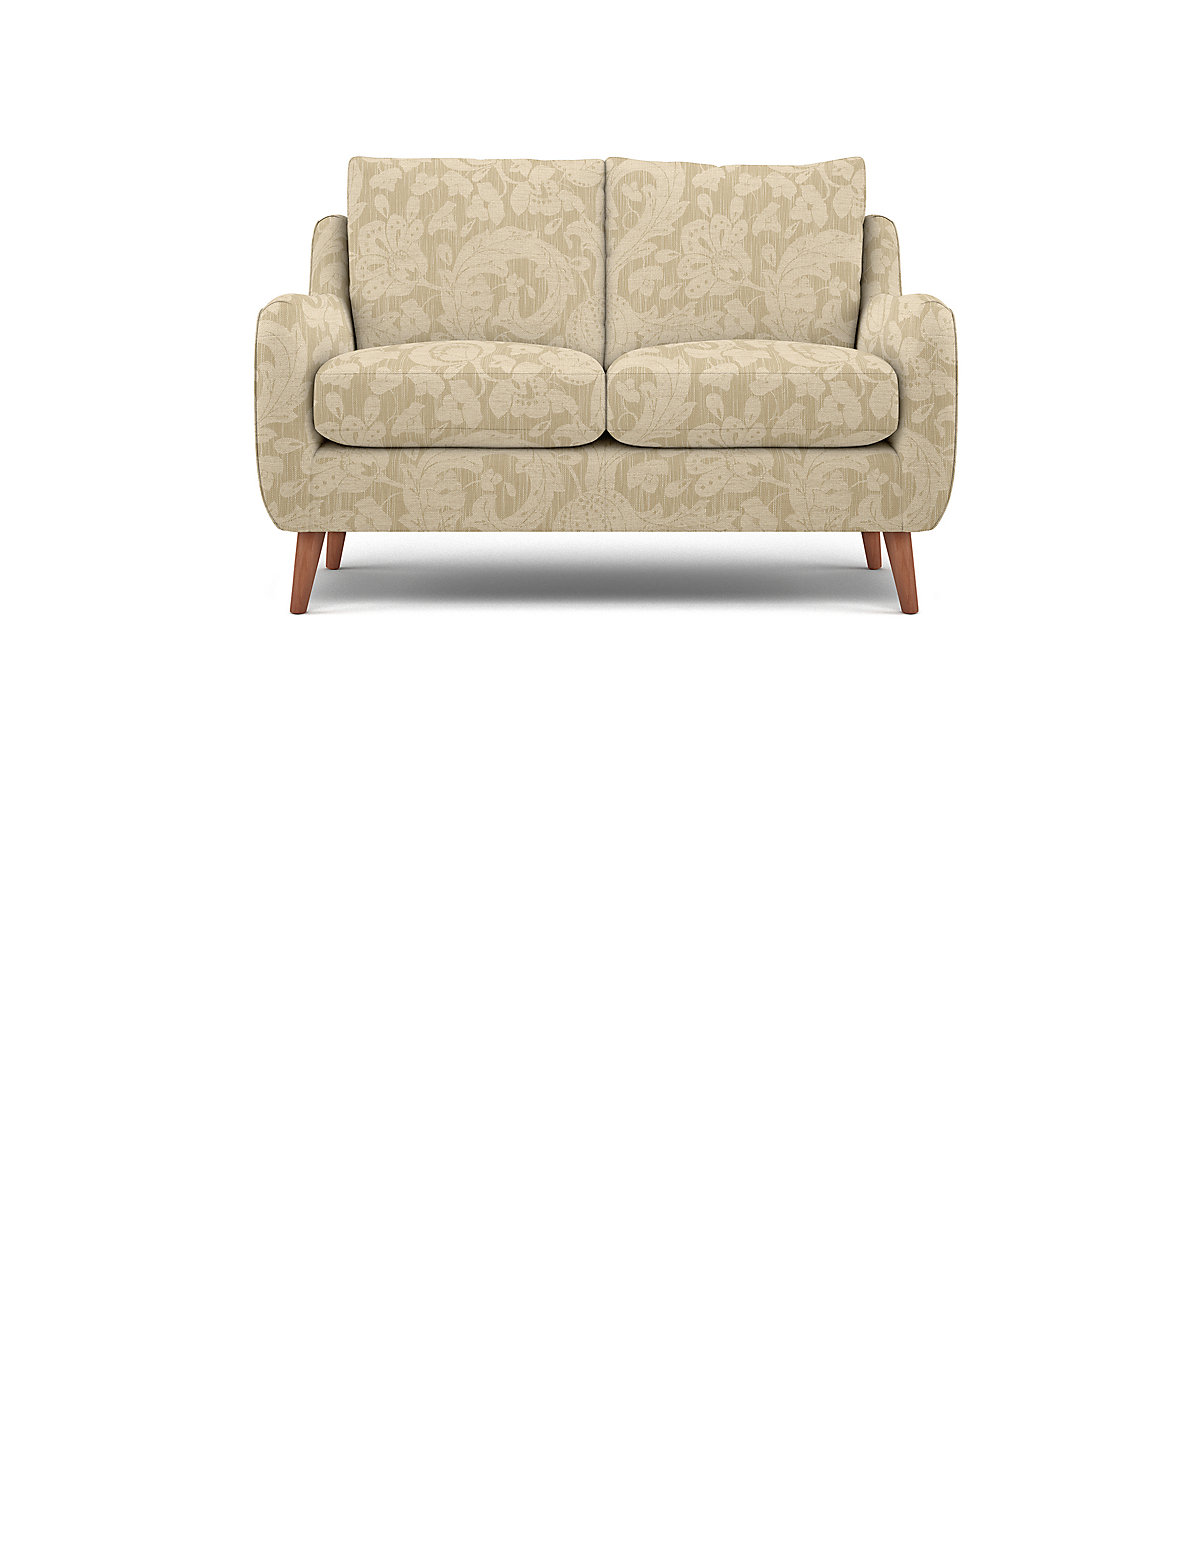 Marigold Small Sofa.